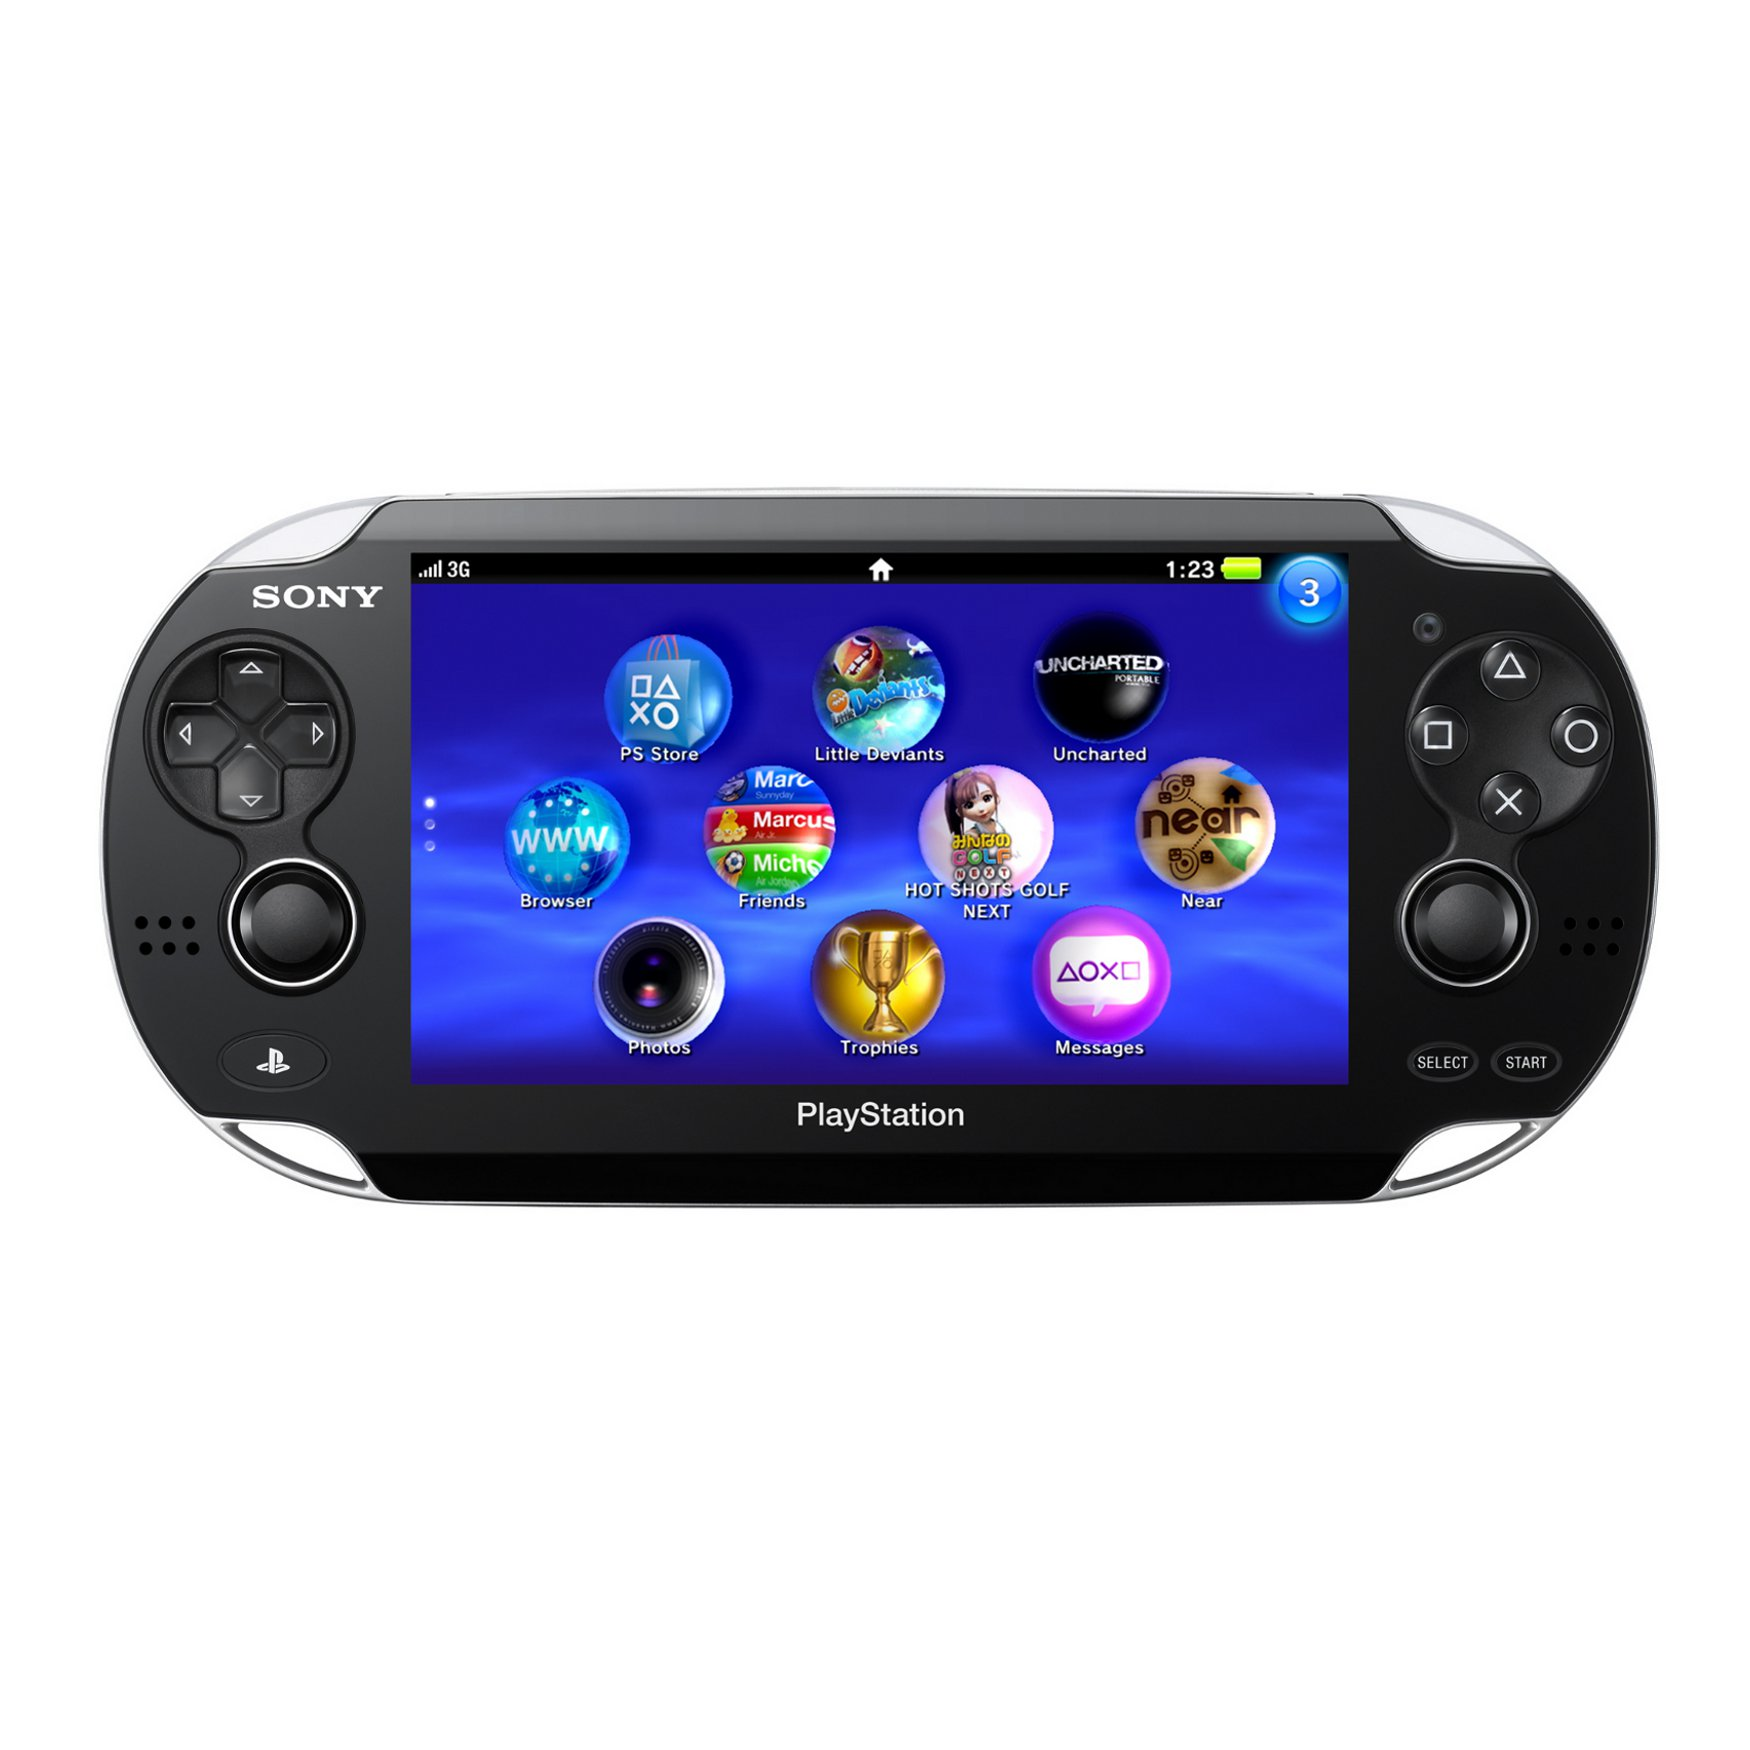 Sony Adds Music Unlimited Service to PSP